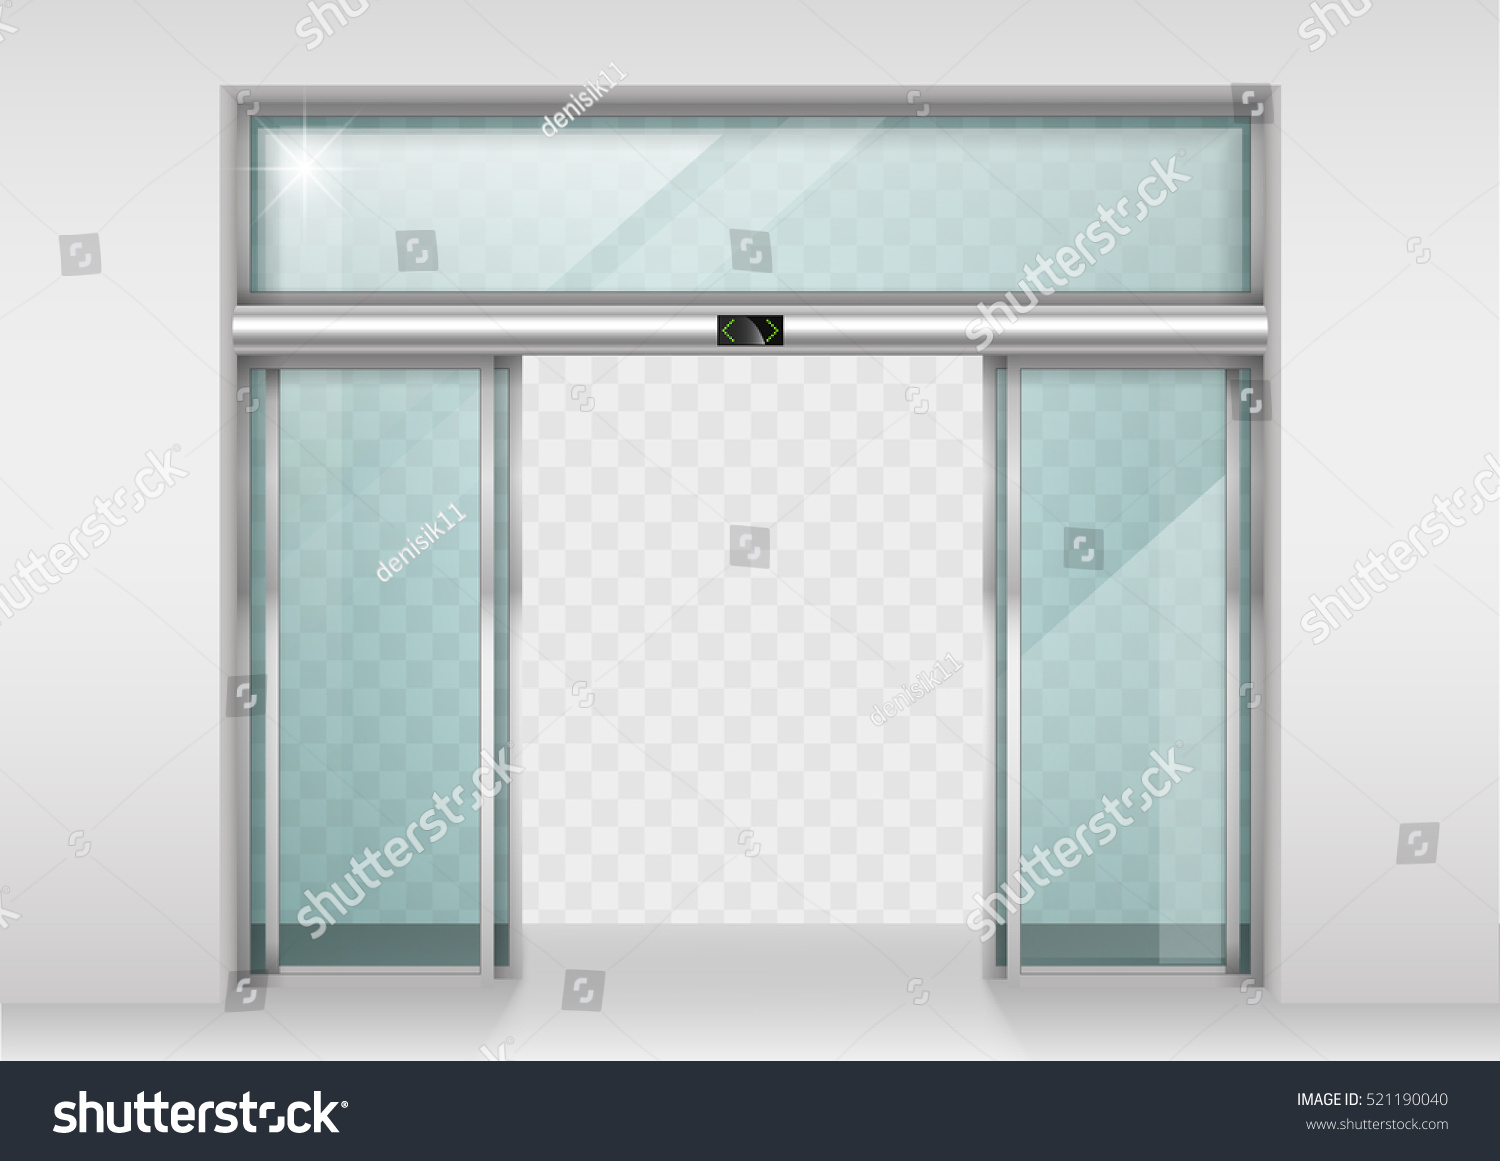 double sliding glass doors with automatic motion sensor entrance to the office train station